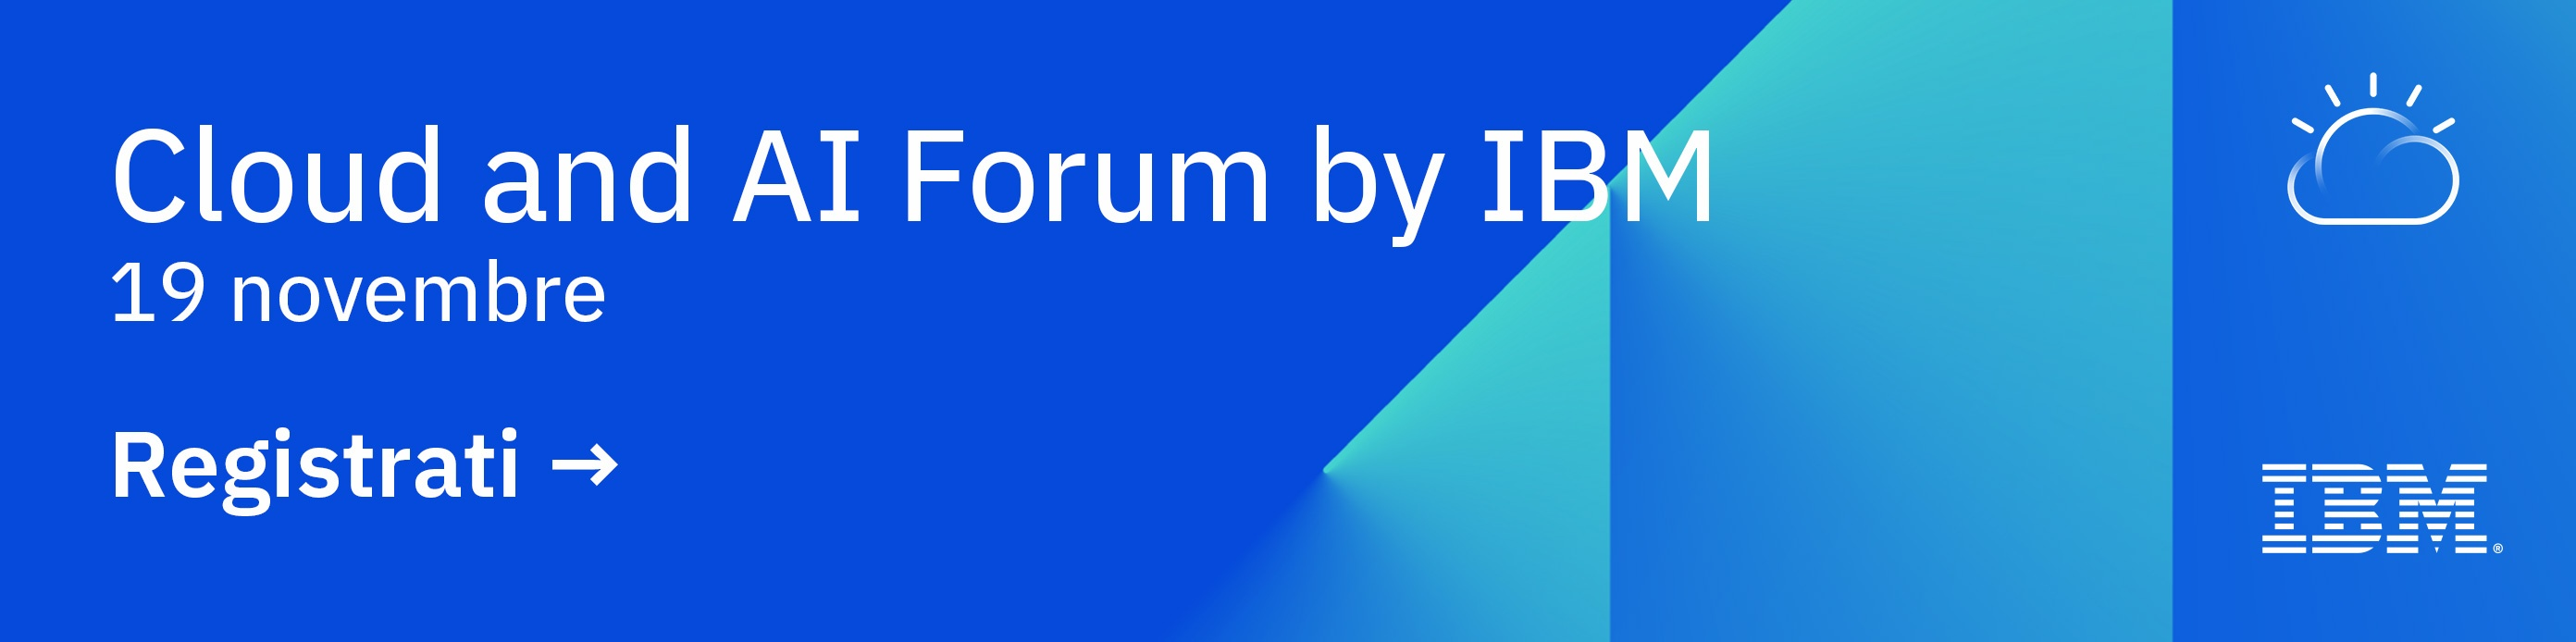 Cloud and AI Forum by IBM